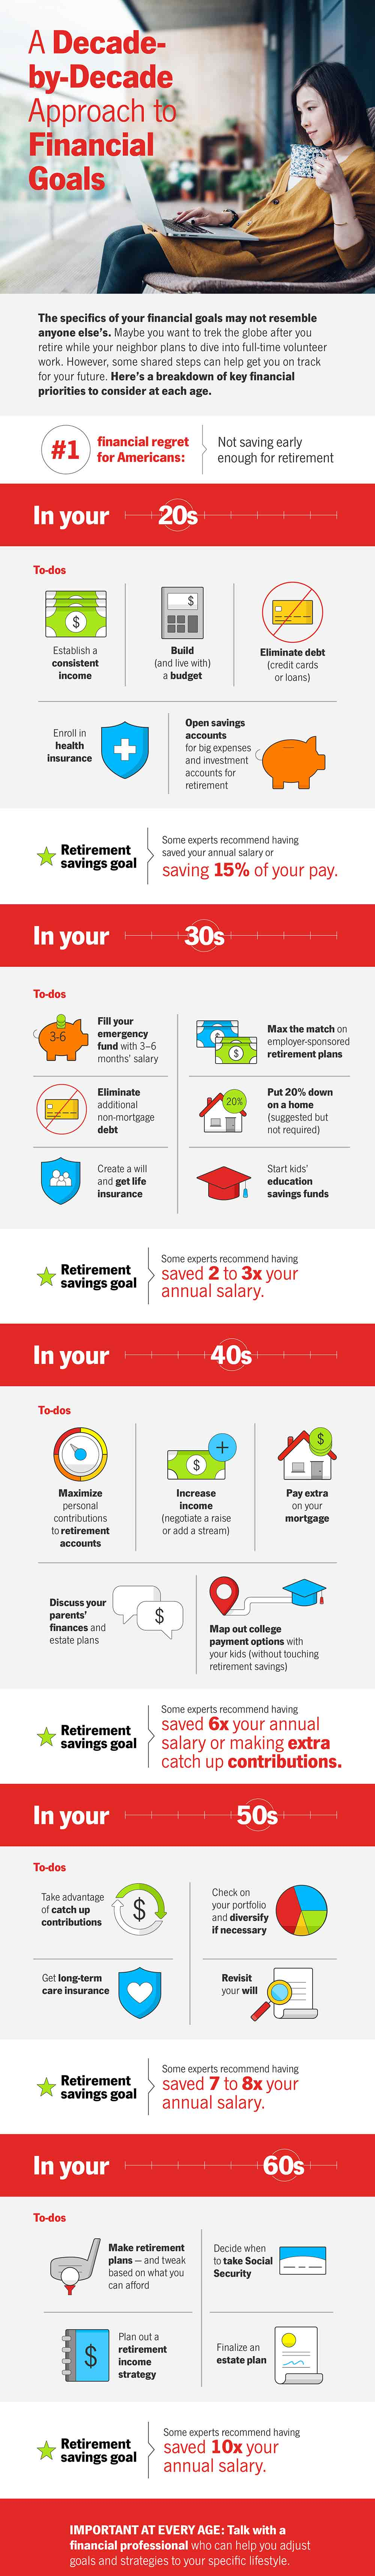 A Decade-by-Decade Approach to Financial Goals - State Farm®